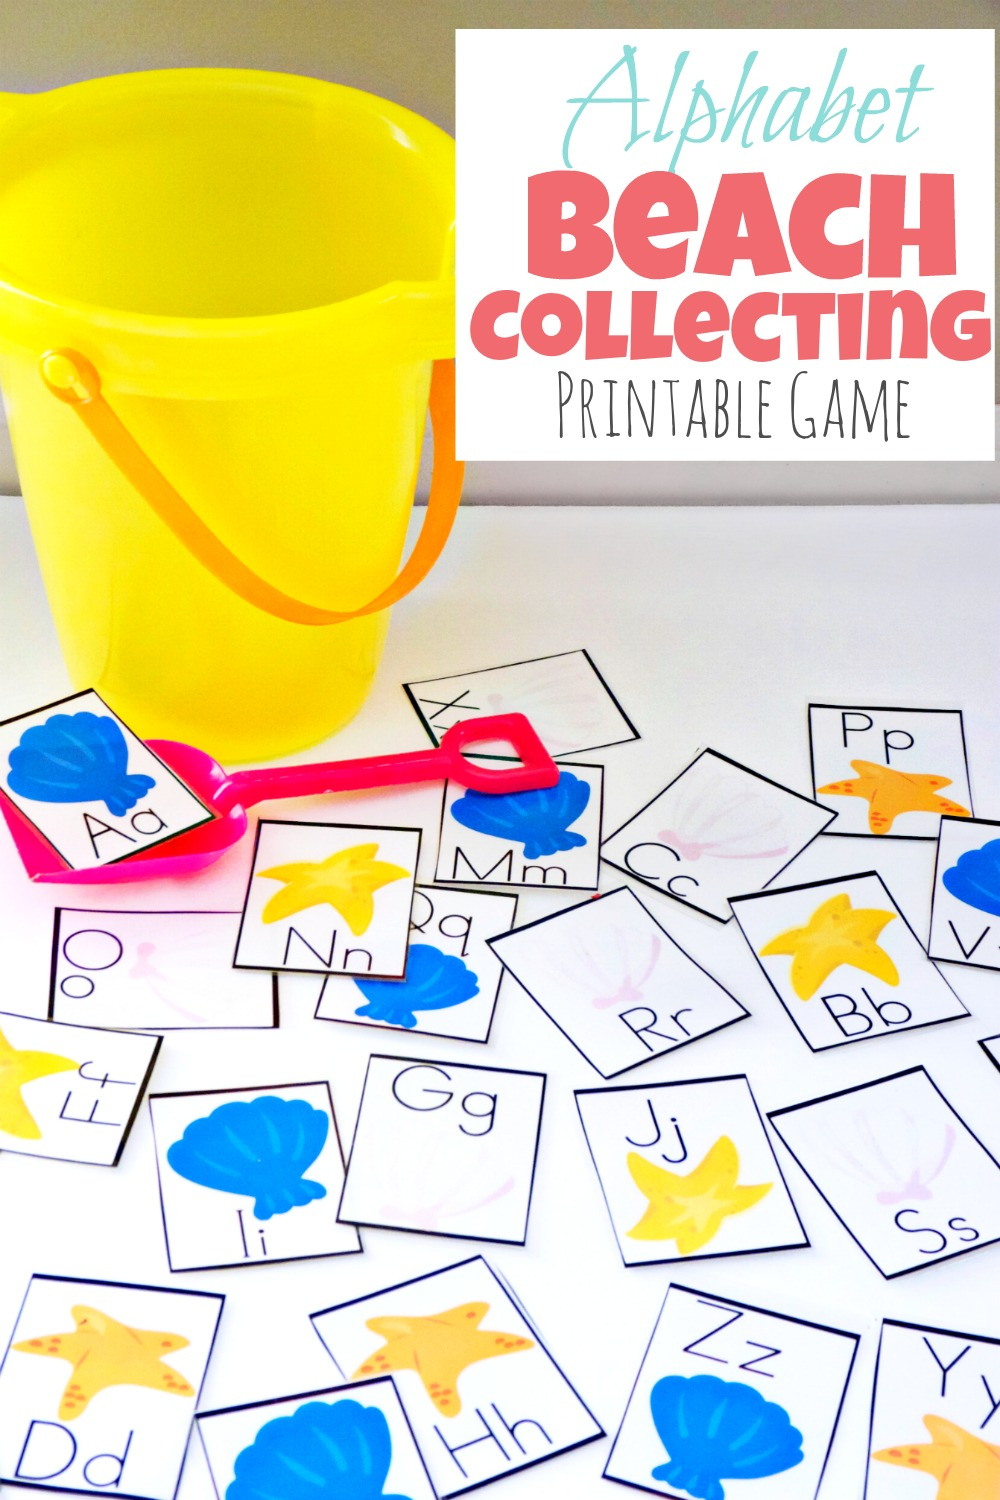 Alphabet beach collecting printable game